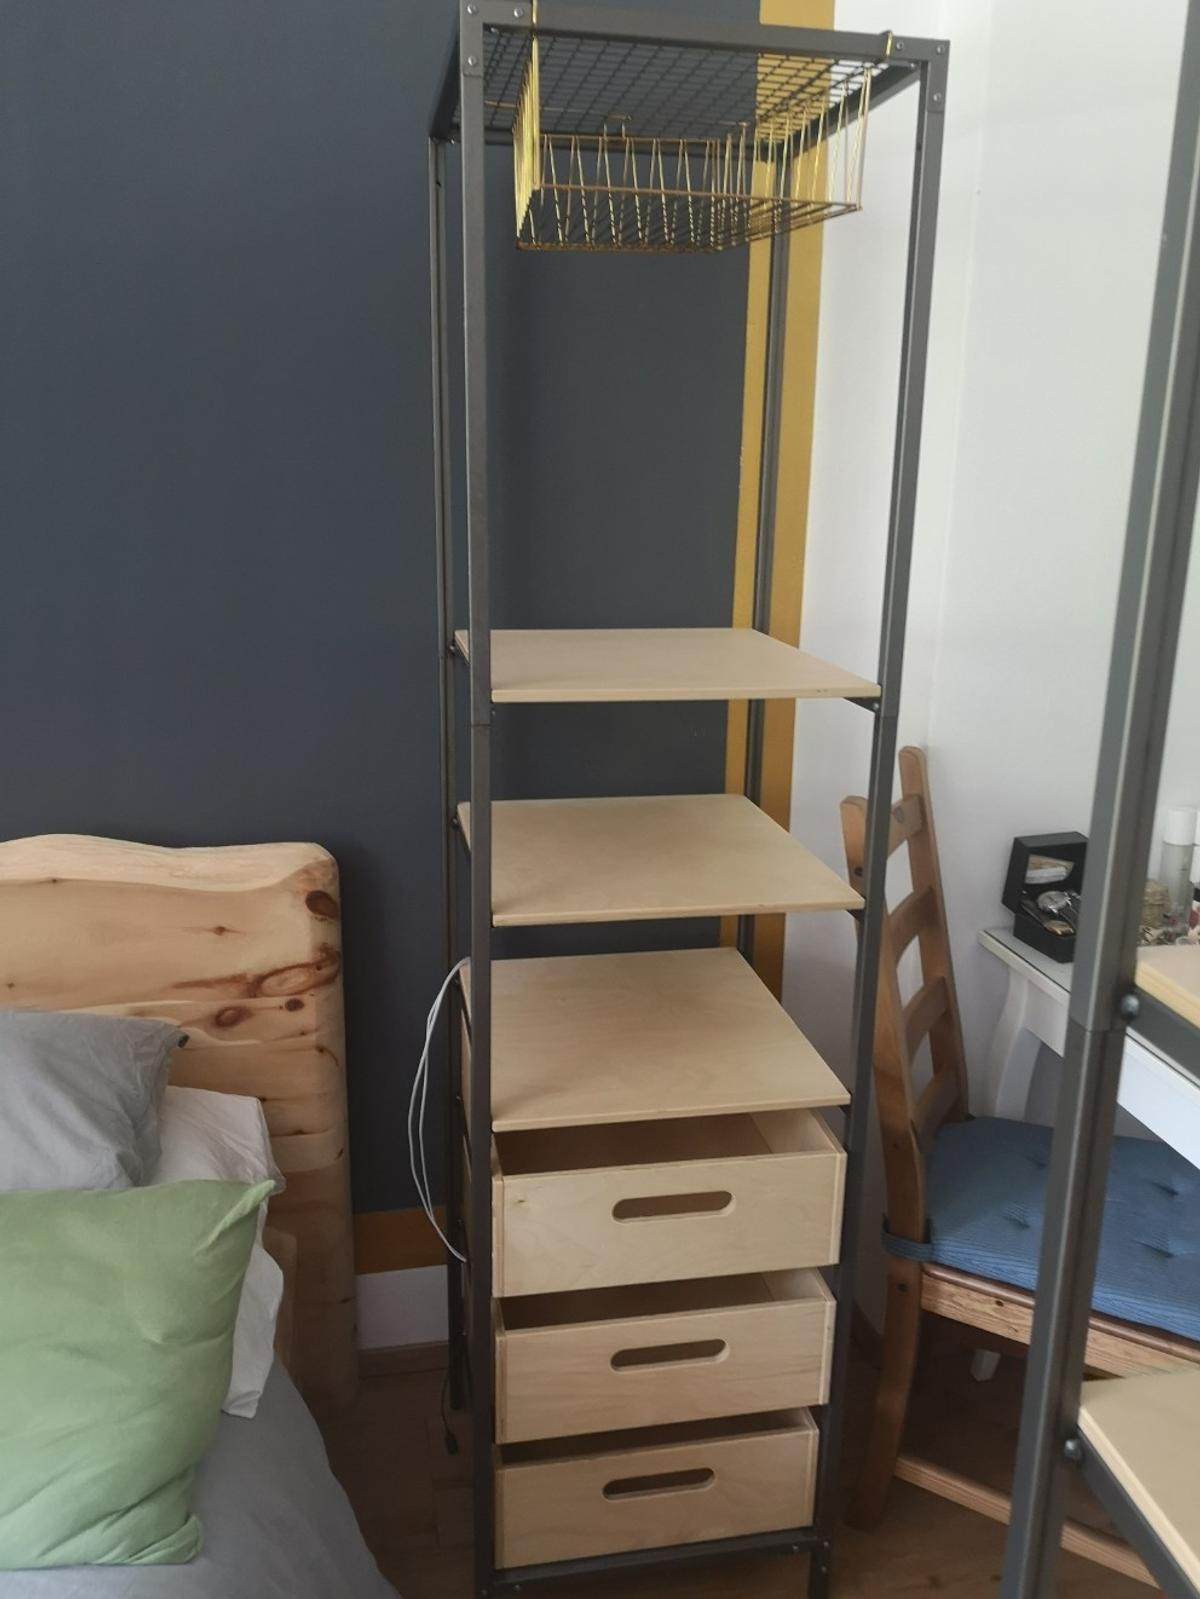 Metallregal Mit Holz Ikea Regal In 6323 Gemeinde Bad Häring For 80 00 For Sale Shpock